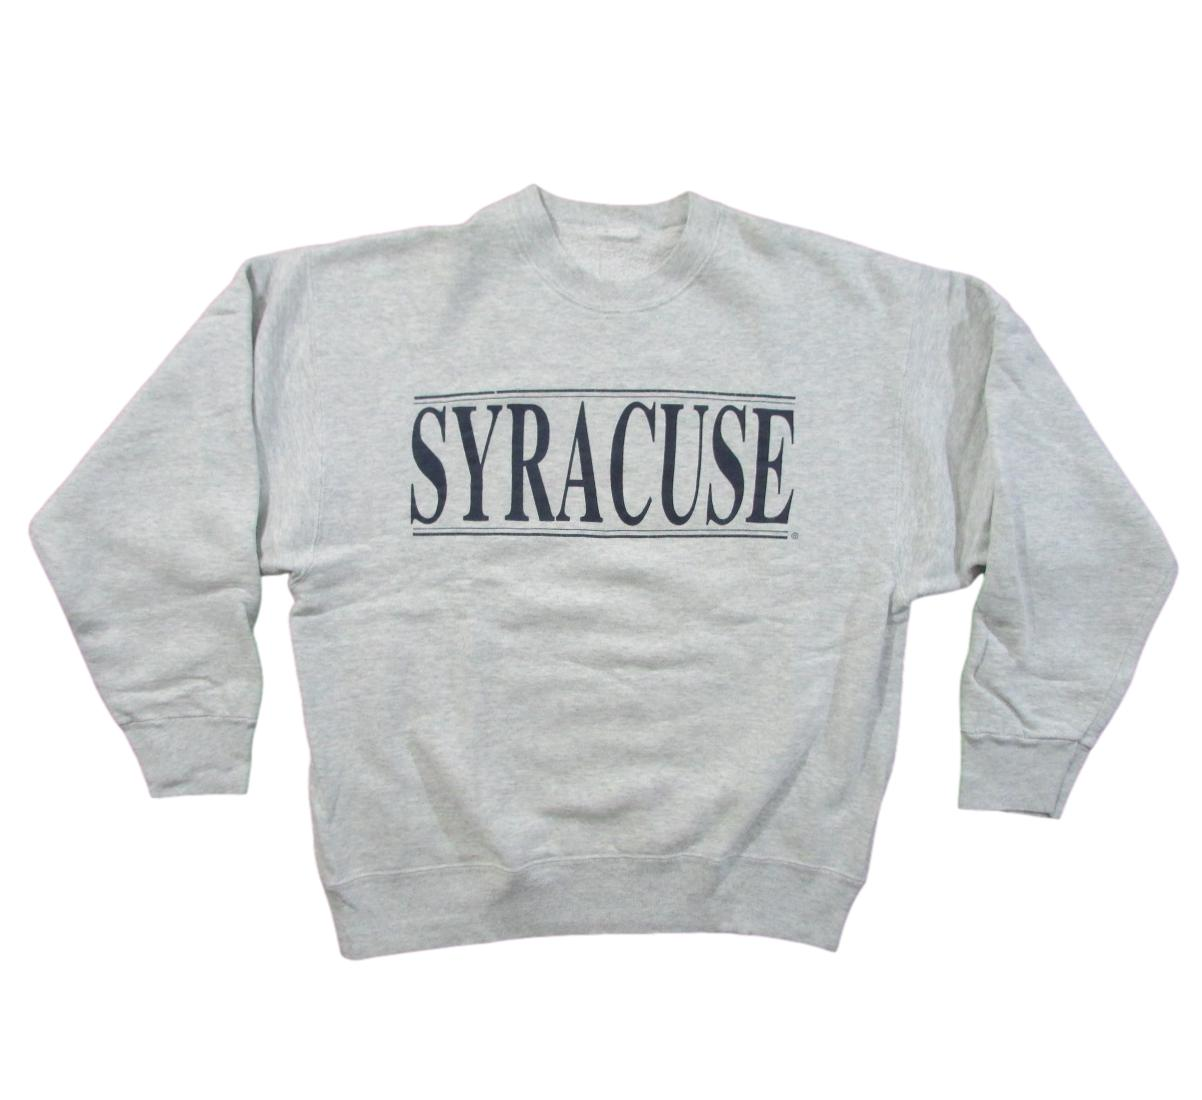 Vintage Syracuse University College Sweater Sz L